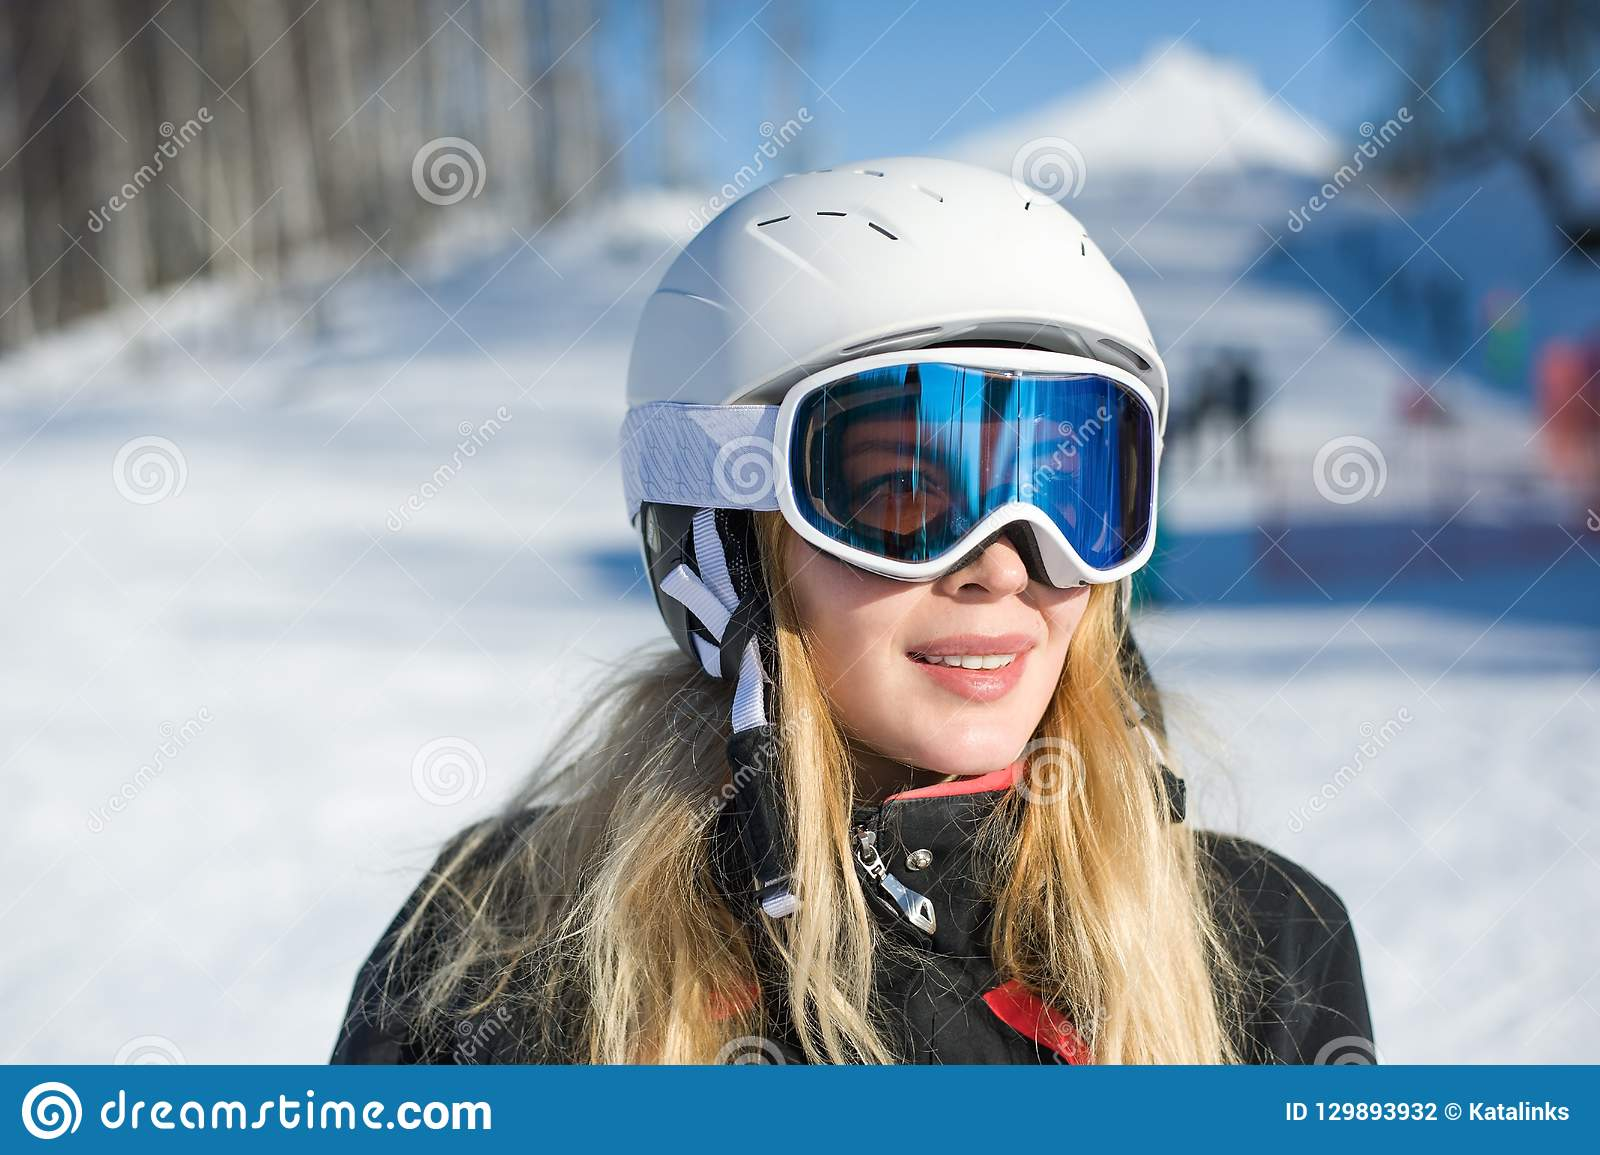 33086342850 Young adult woman snowboarder or skier in snow winter on the mountainside  the ski mask or goggles reflect the mountains